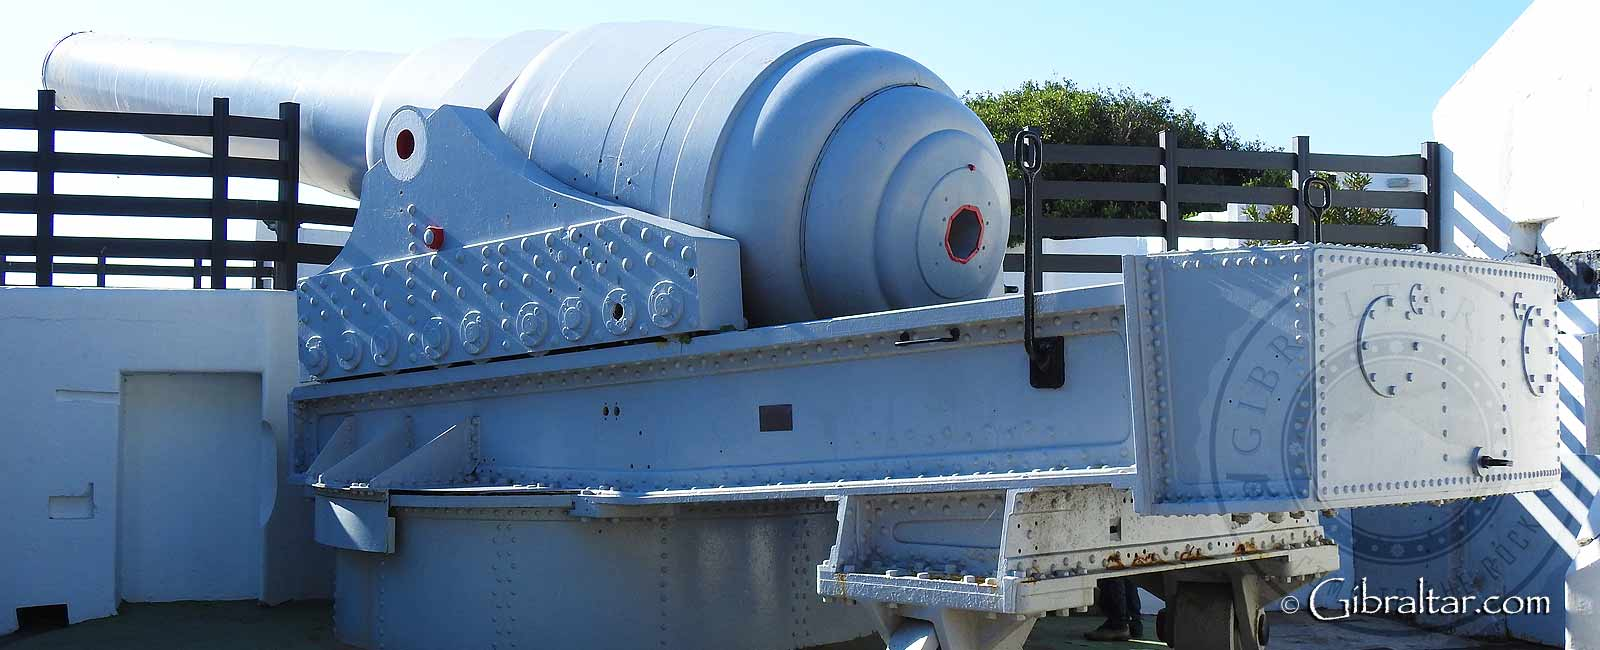 Nelson's Anchorage & The 100 Ton Gun